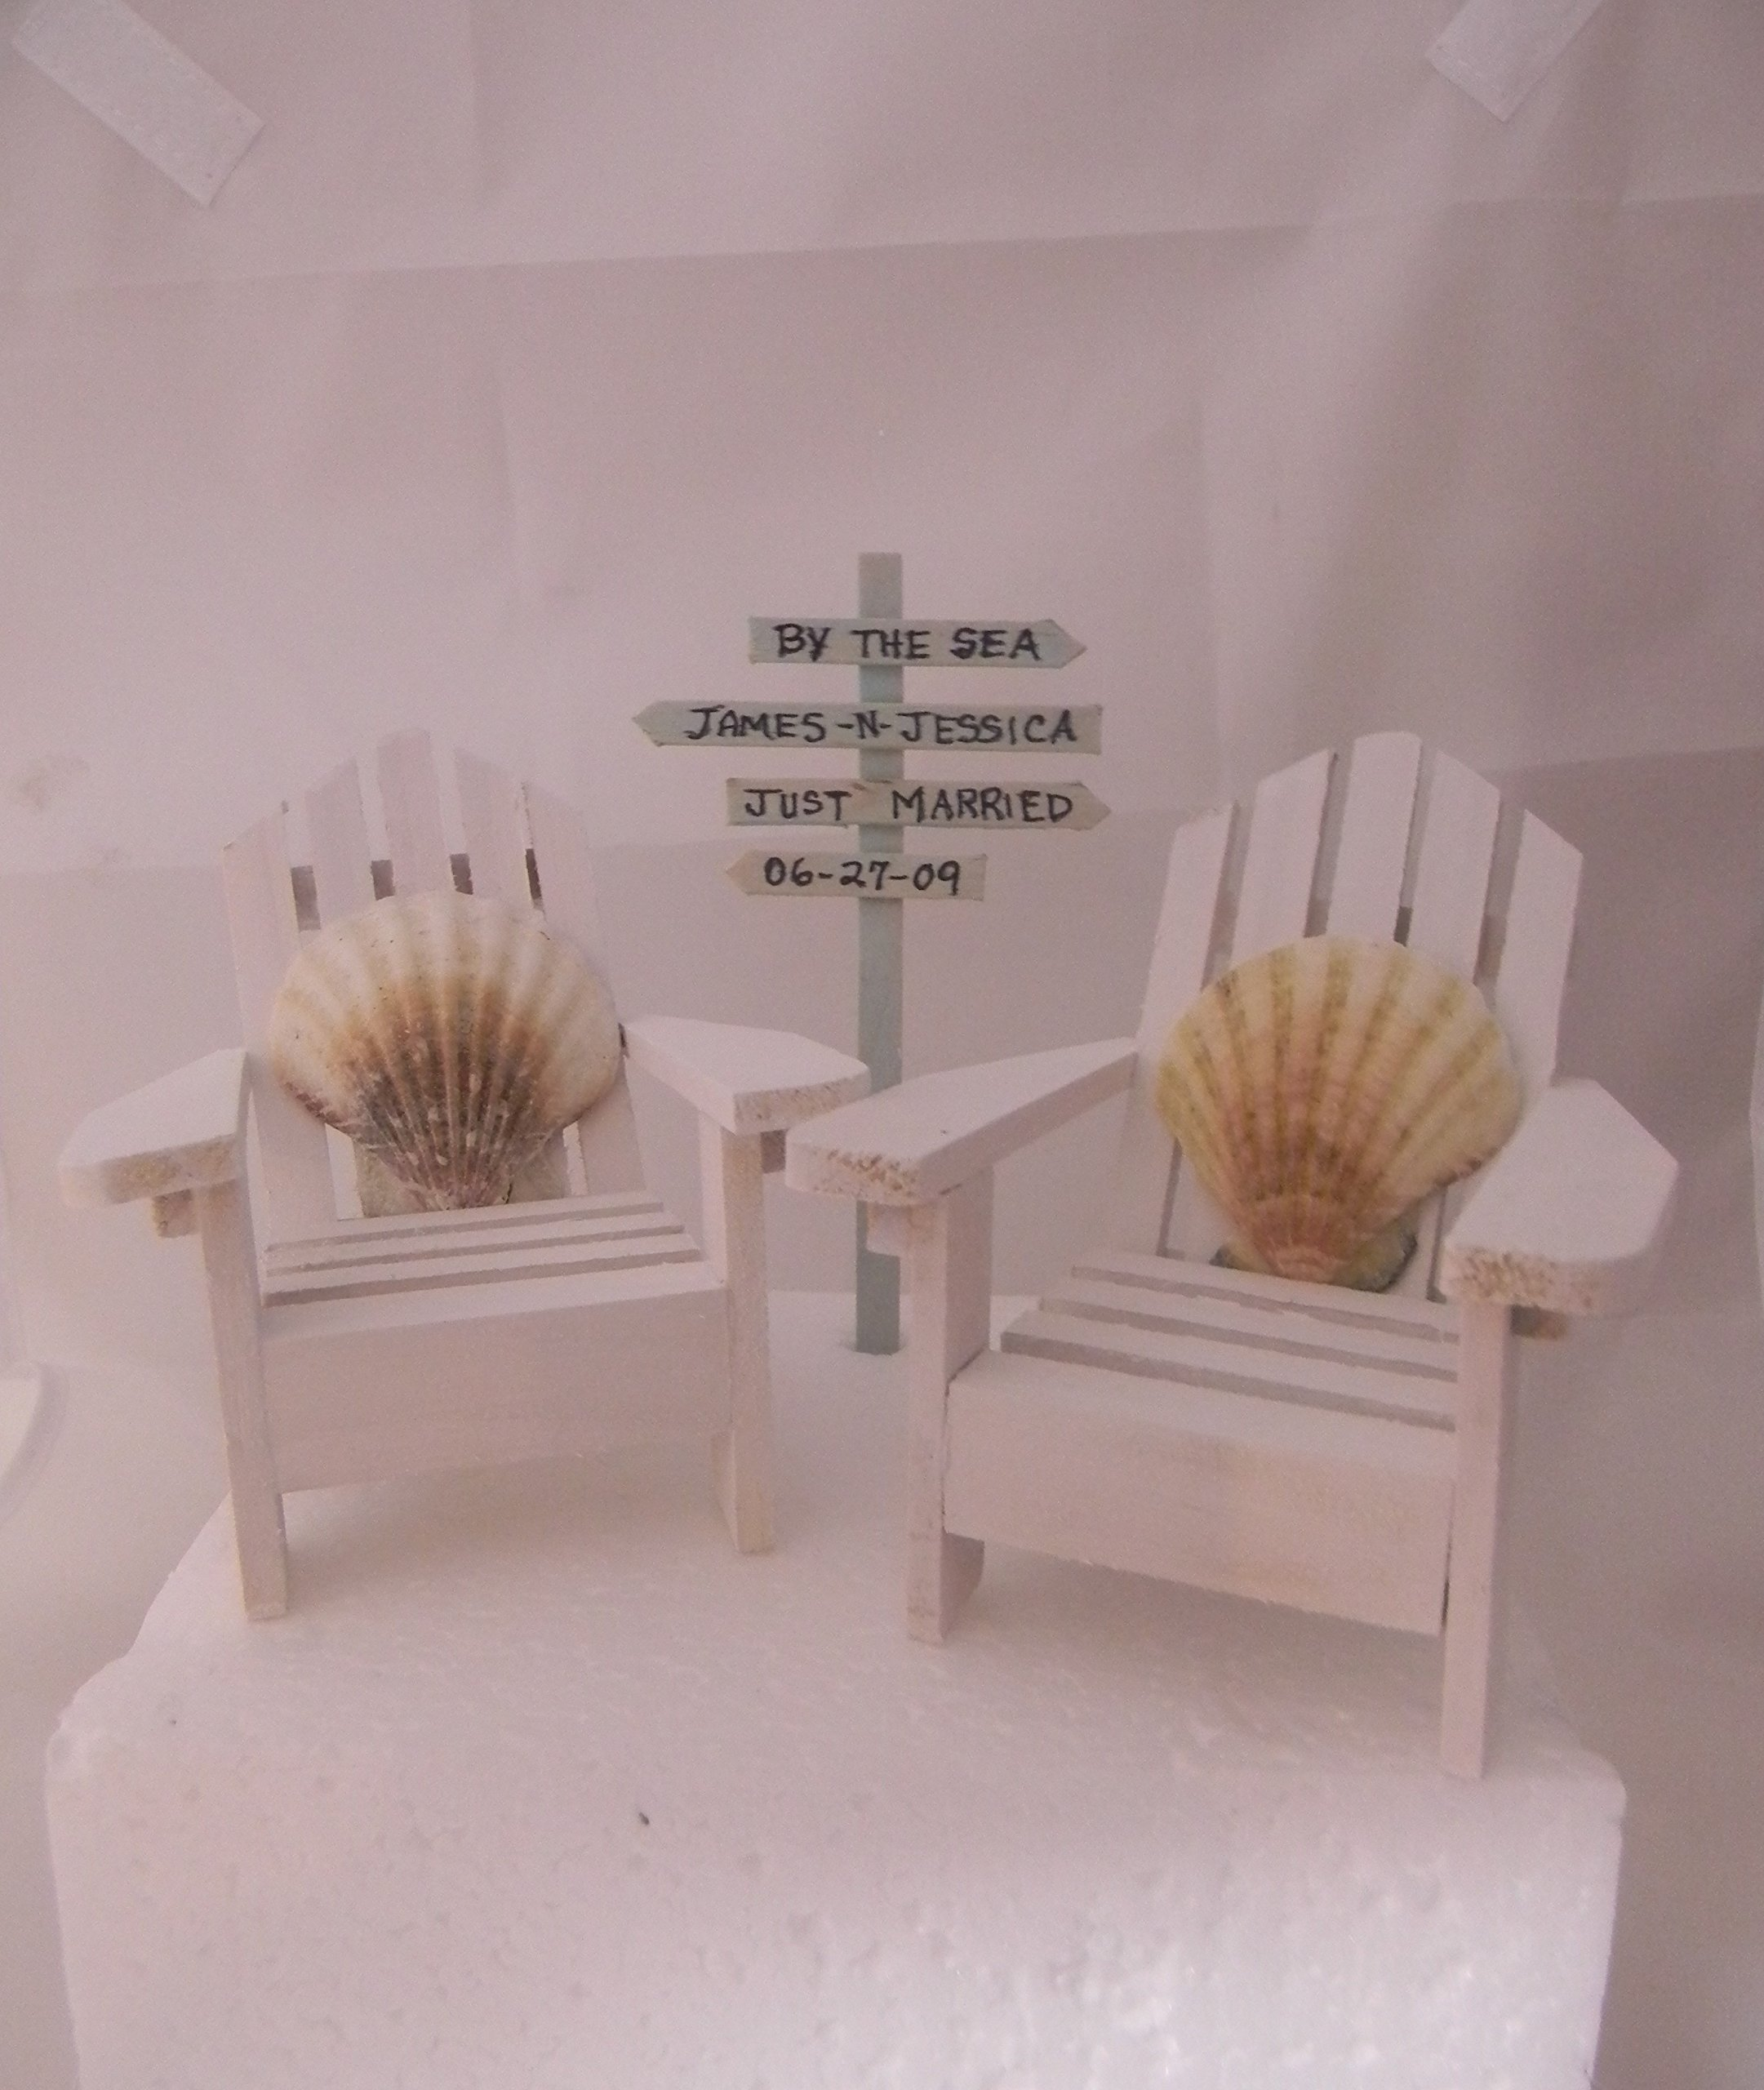 Wedding Reception Adirondack Chairs Beach Real Seahell Cake Topper Sign by Design by Suzanne (Image #1)